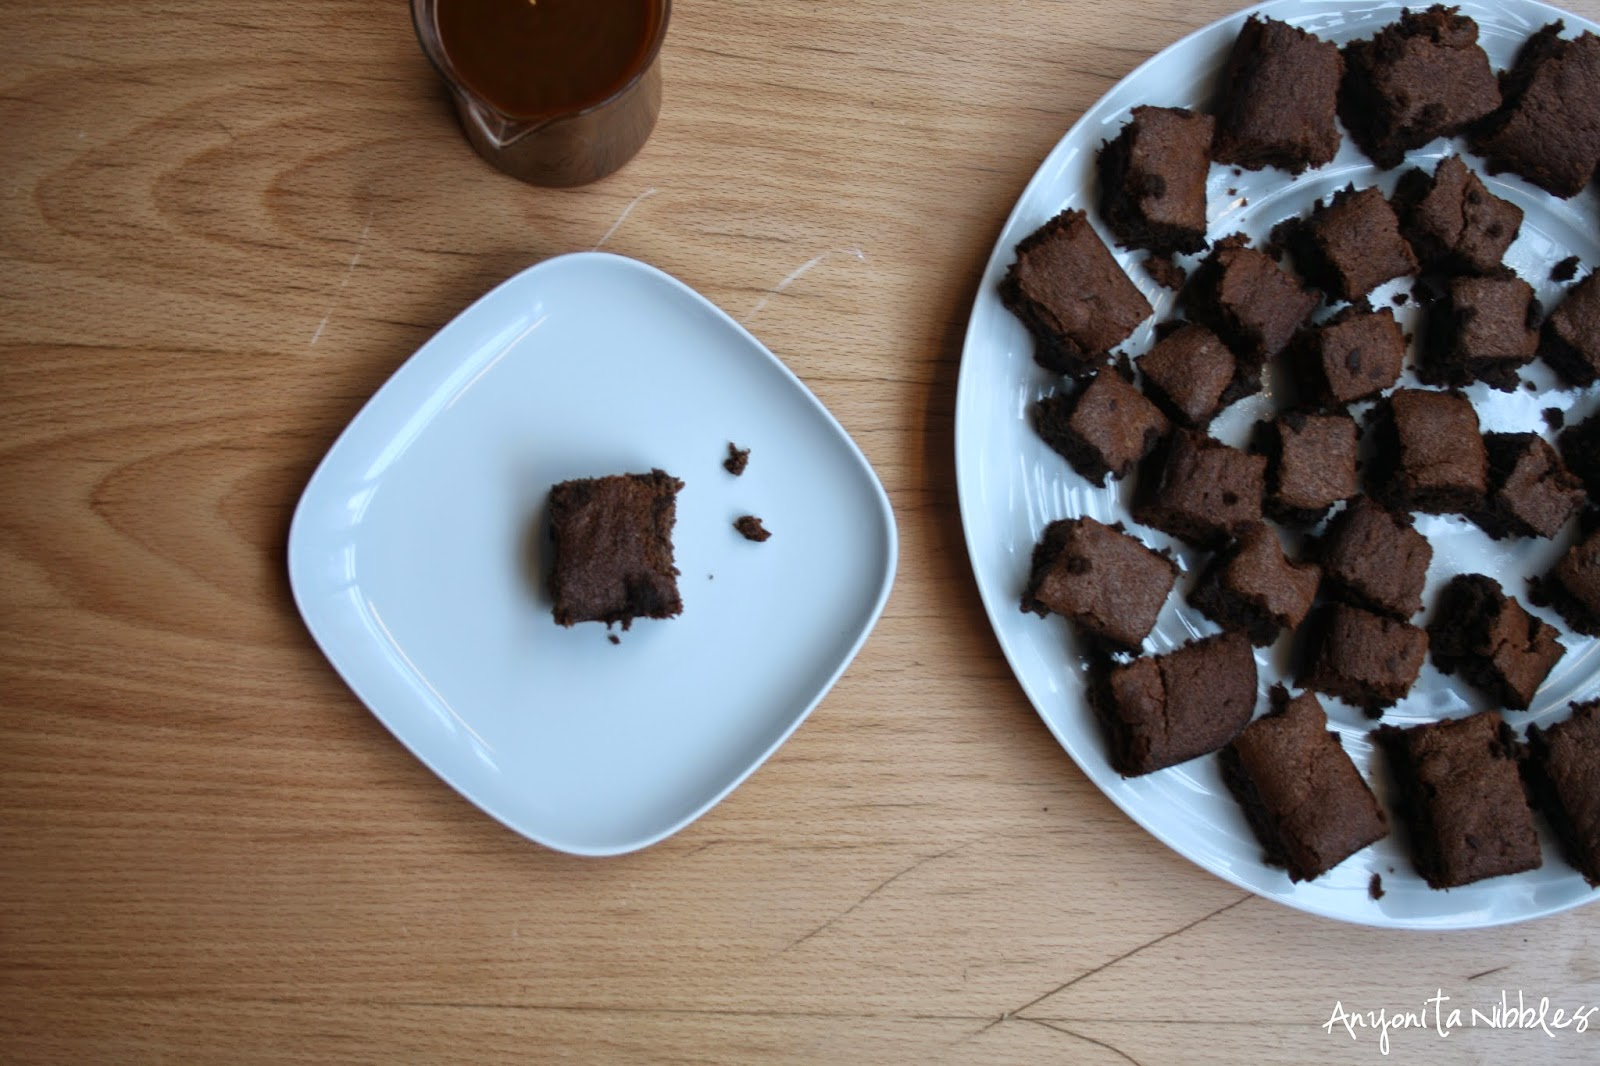 Unadorned gluten free sticky toffee pudding brownies from Anyonita Nibbles